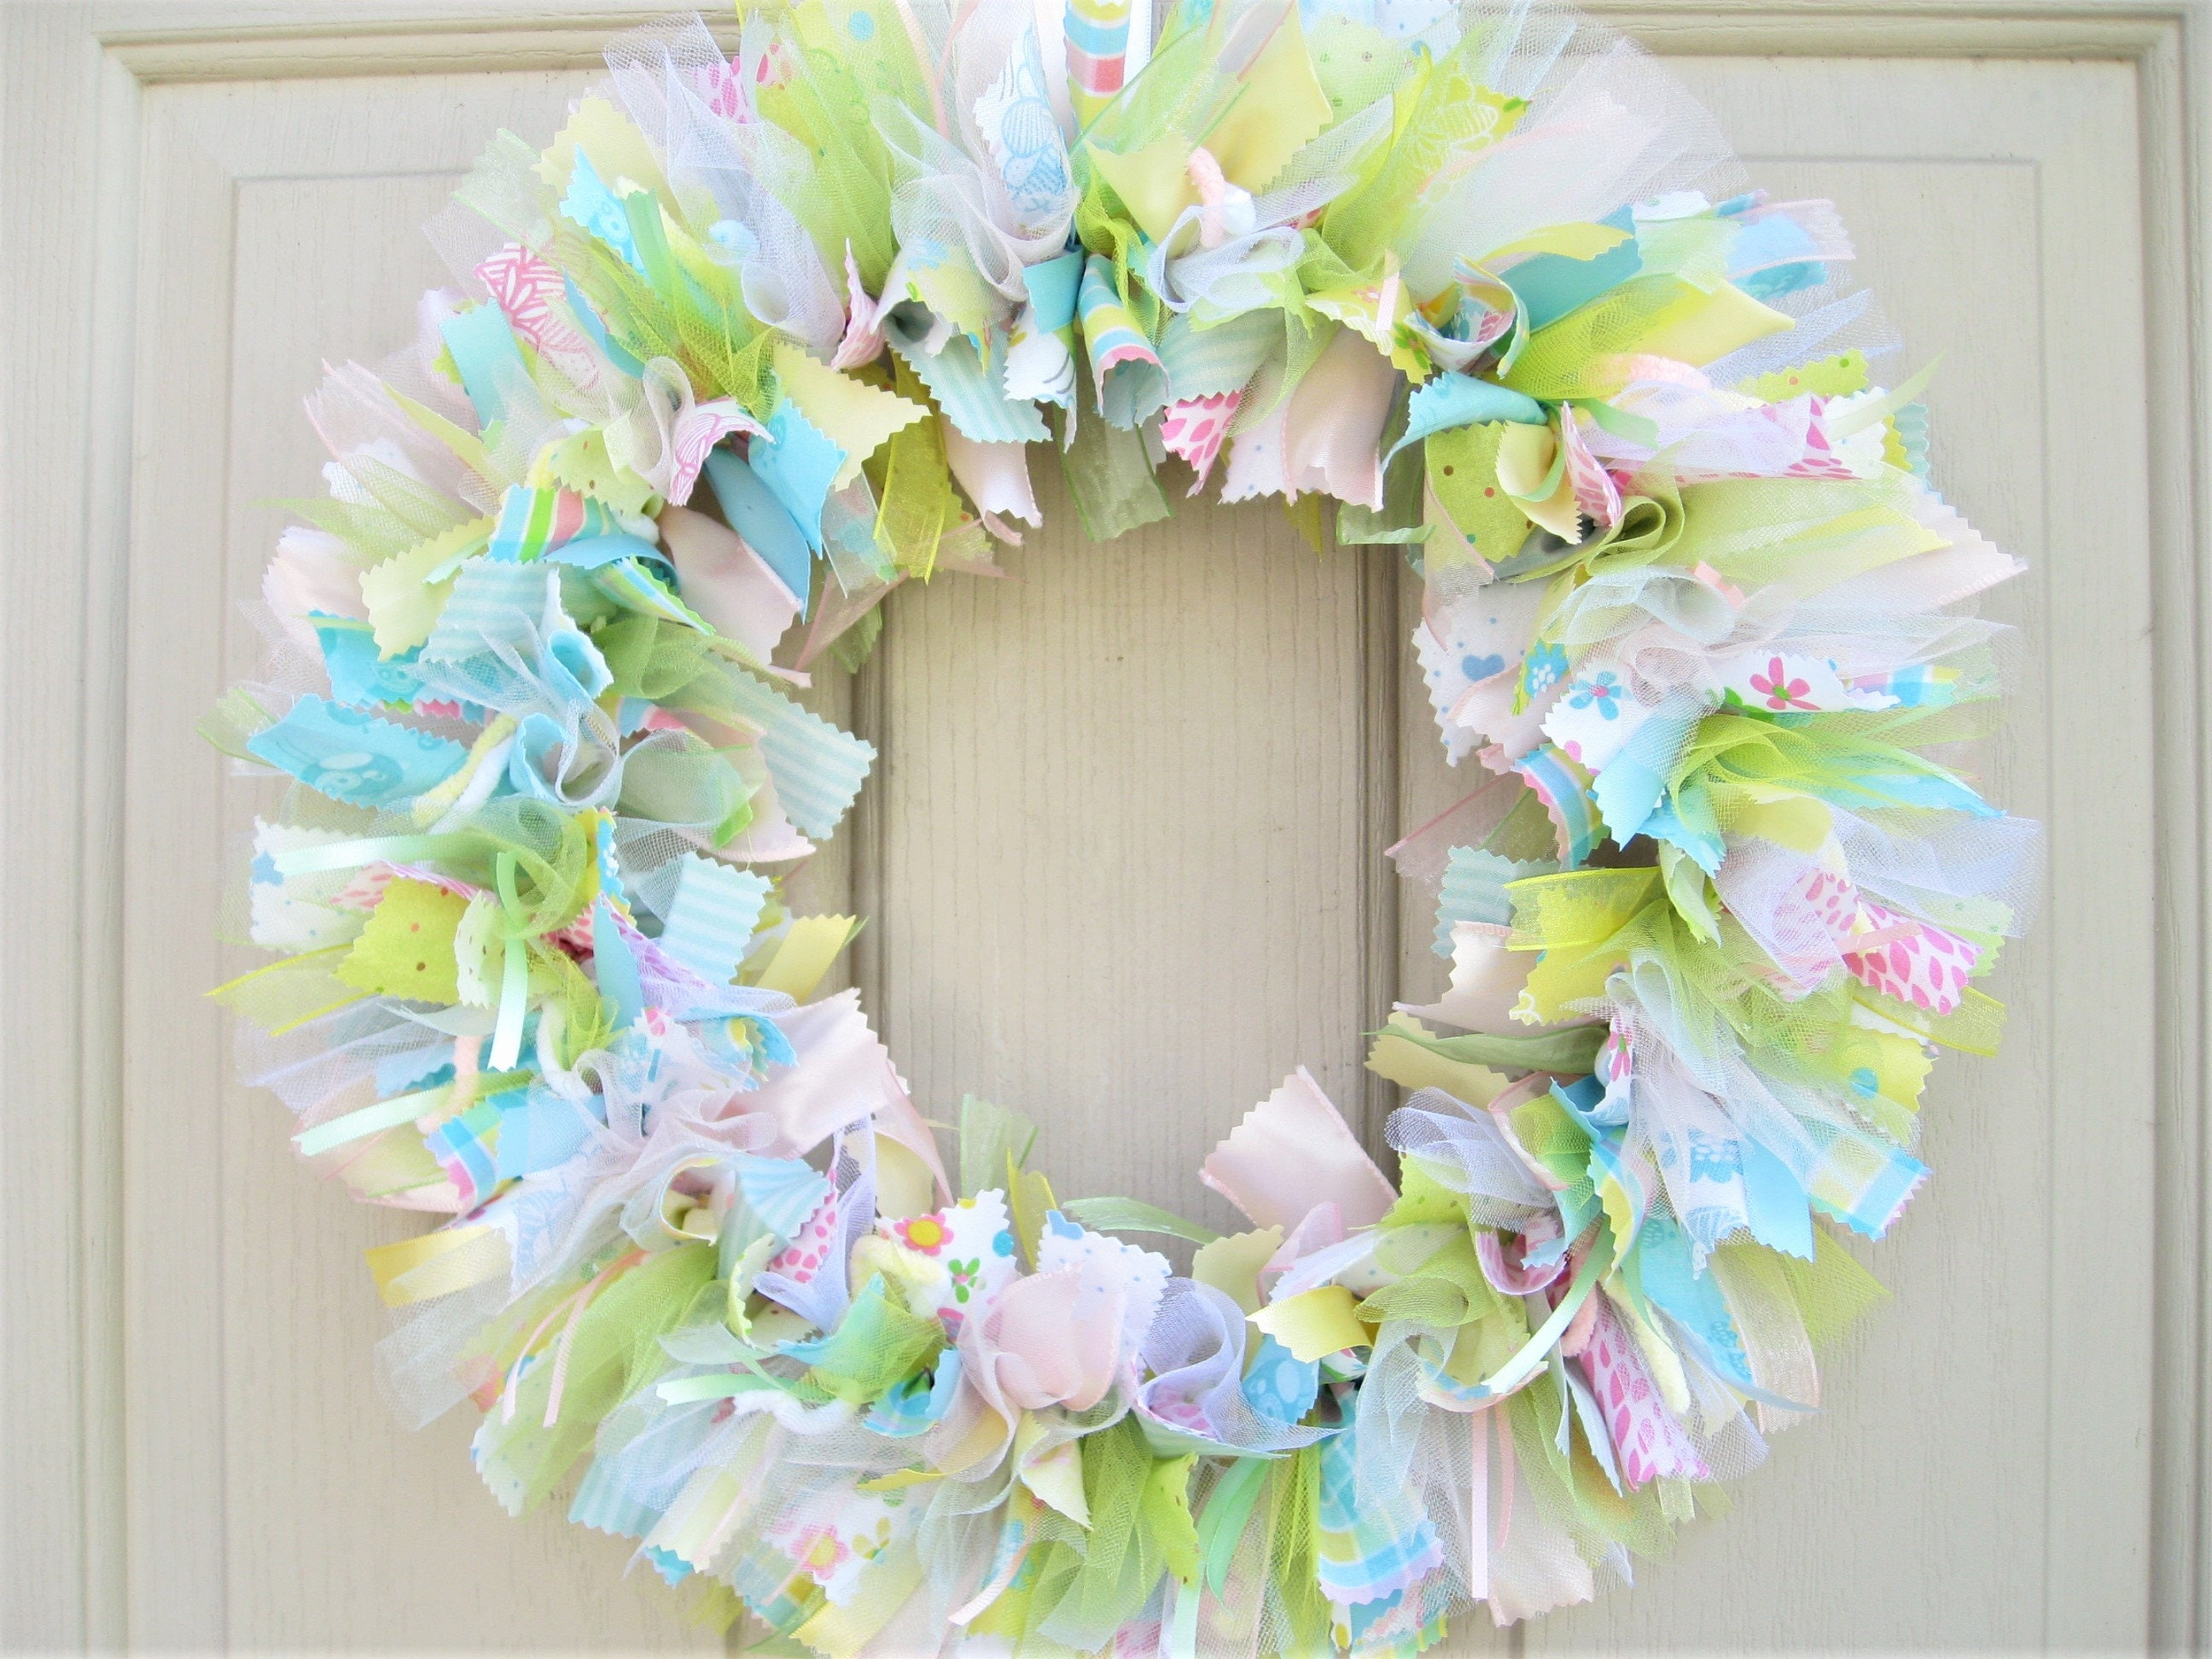 New baby wreath hospital door wreath baby shower decor for Baby shower door decoration